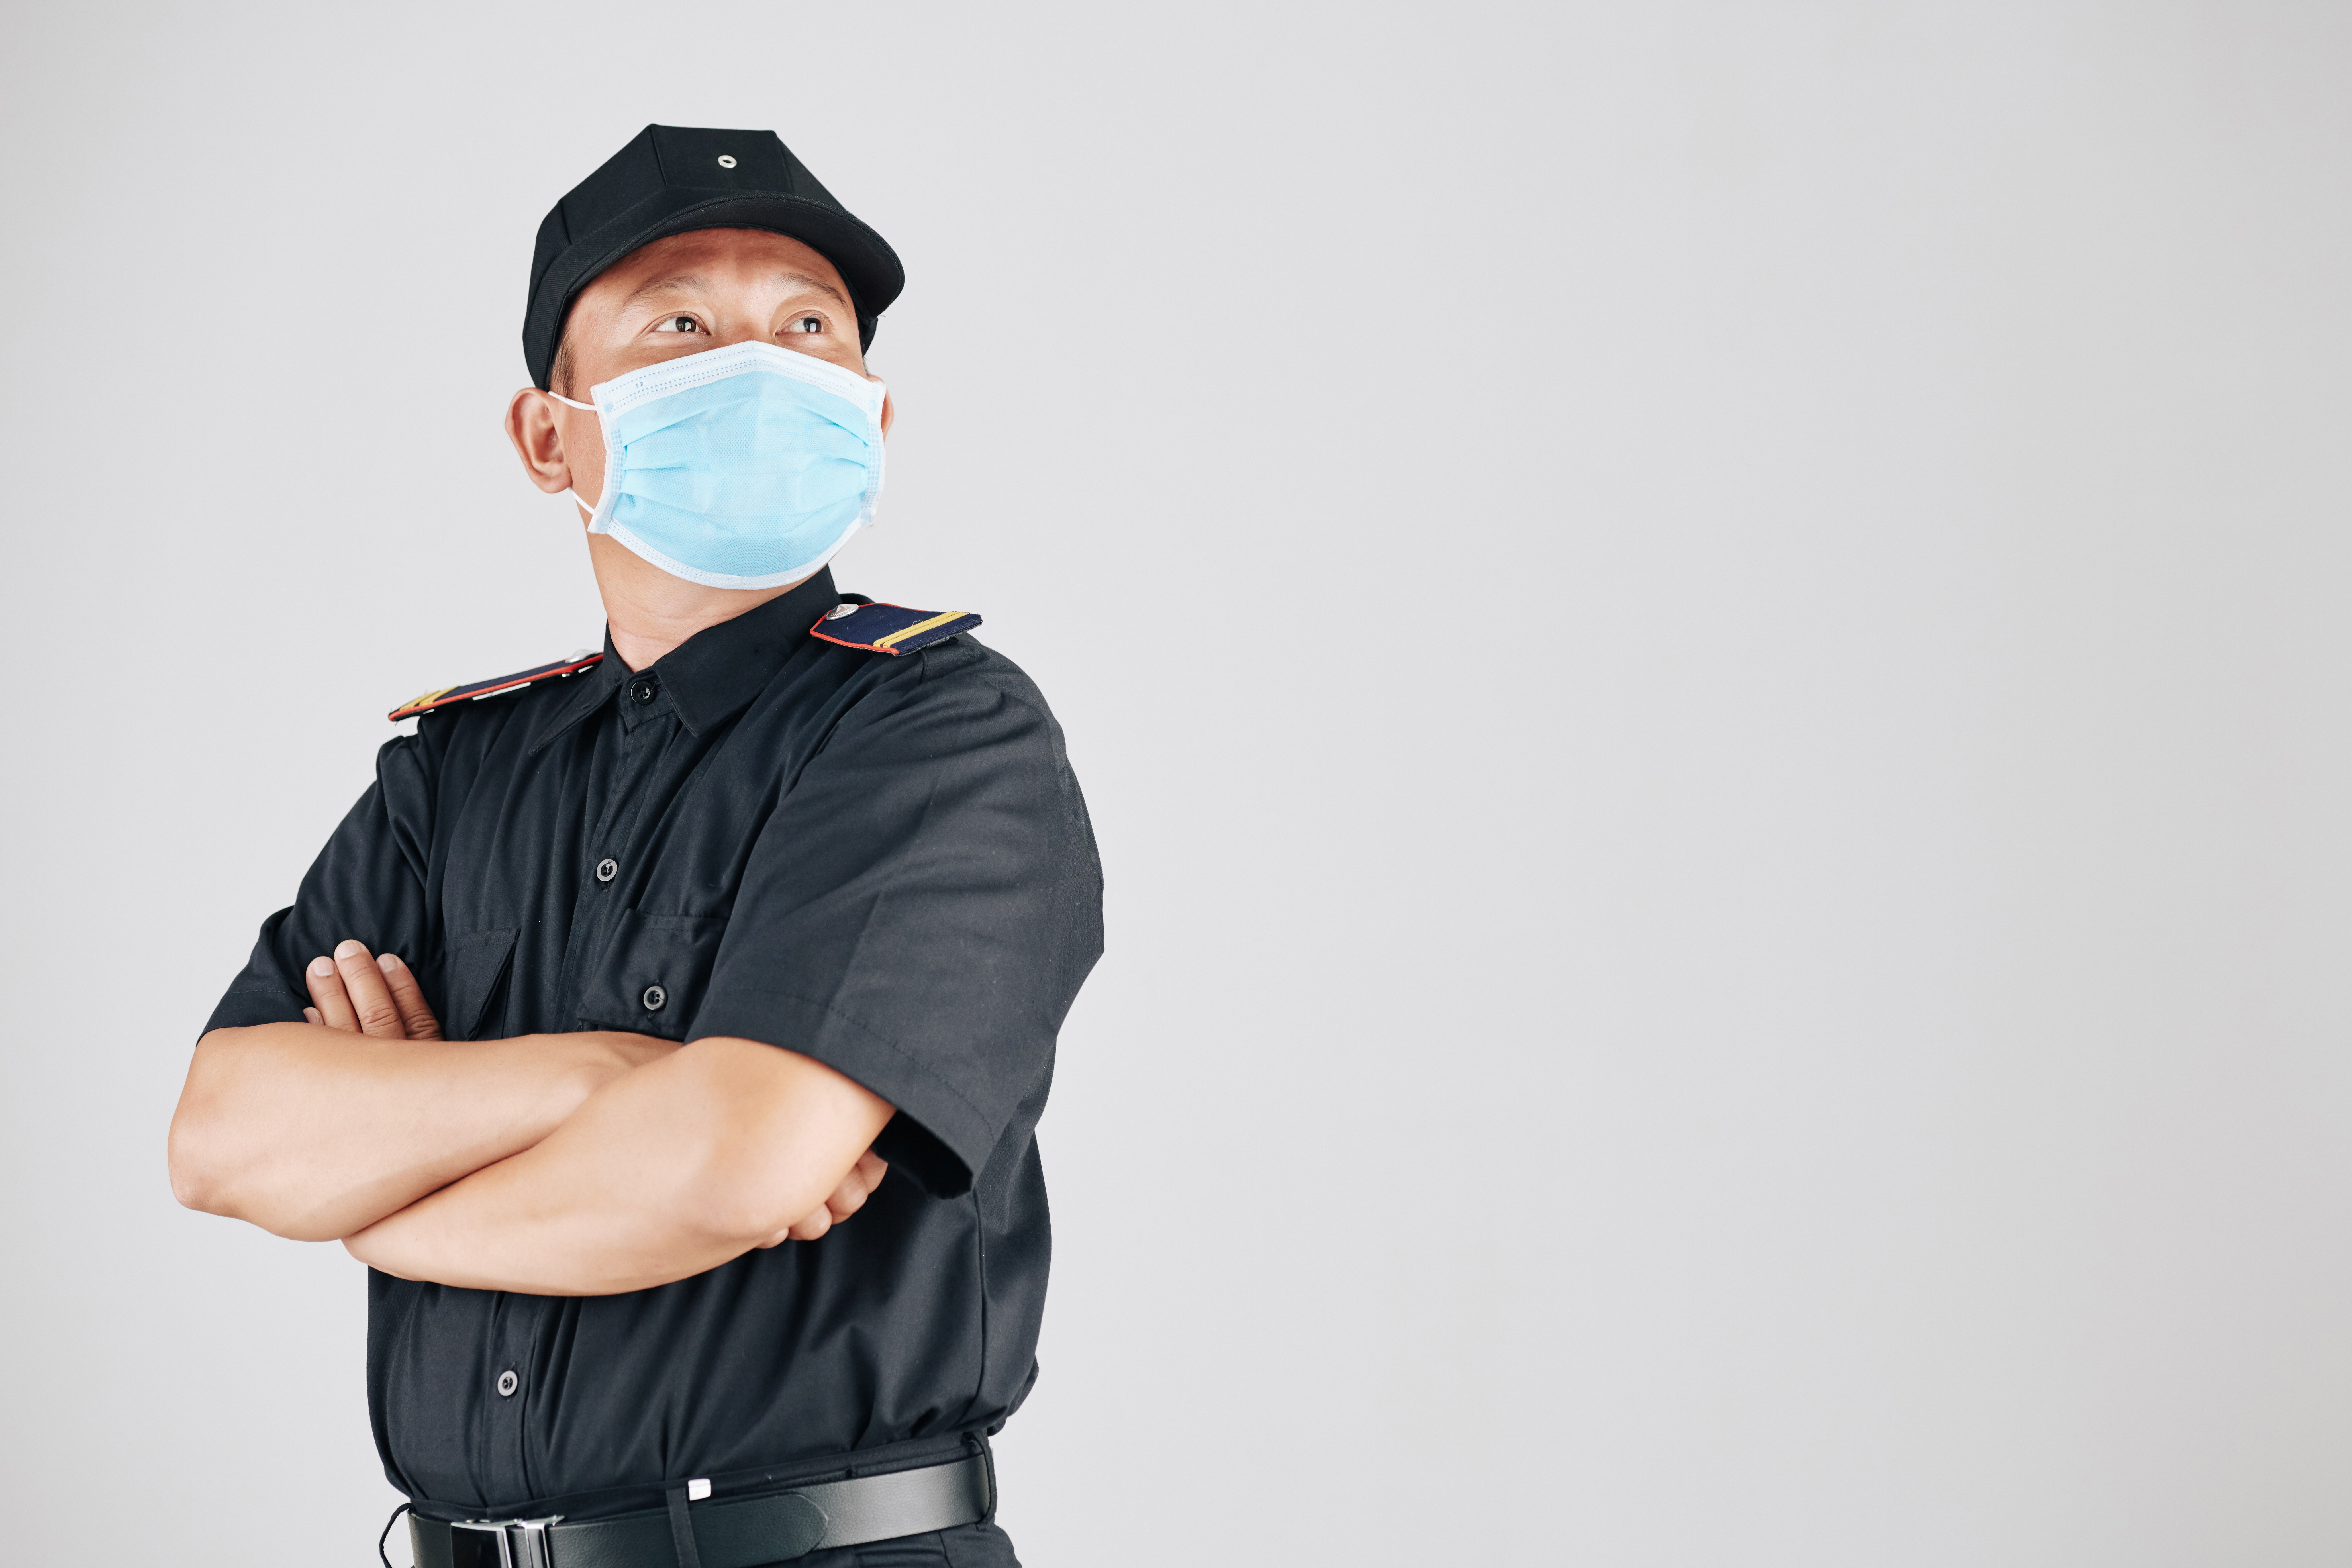 10 Security Services For Your Business During The Pandemic